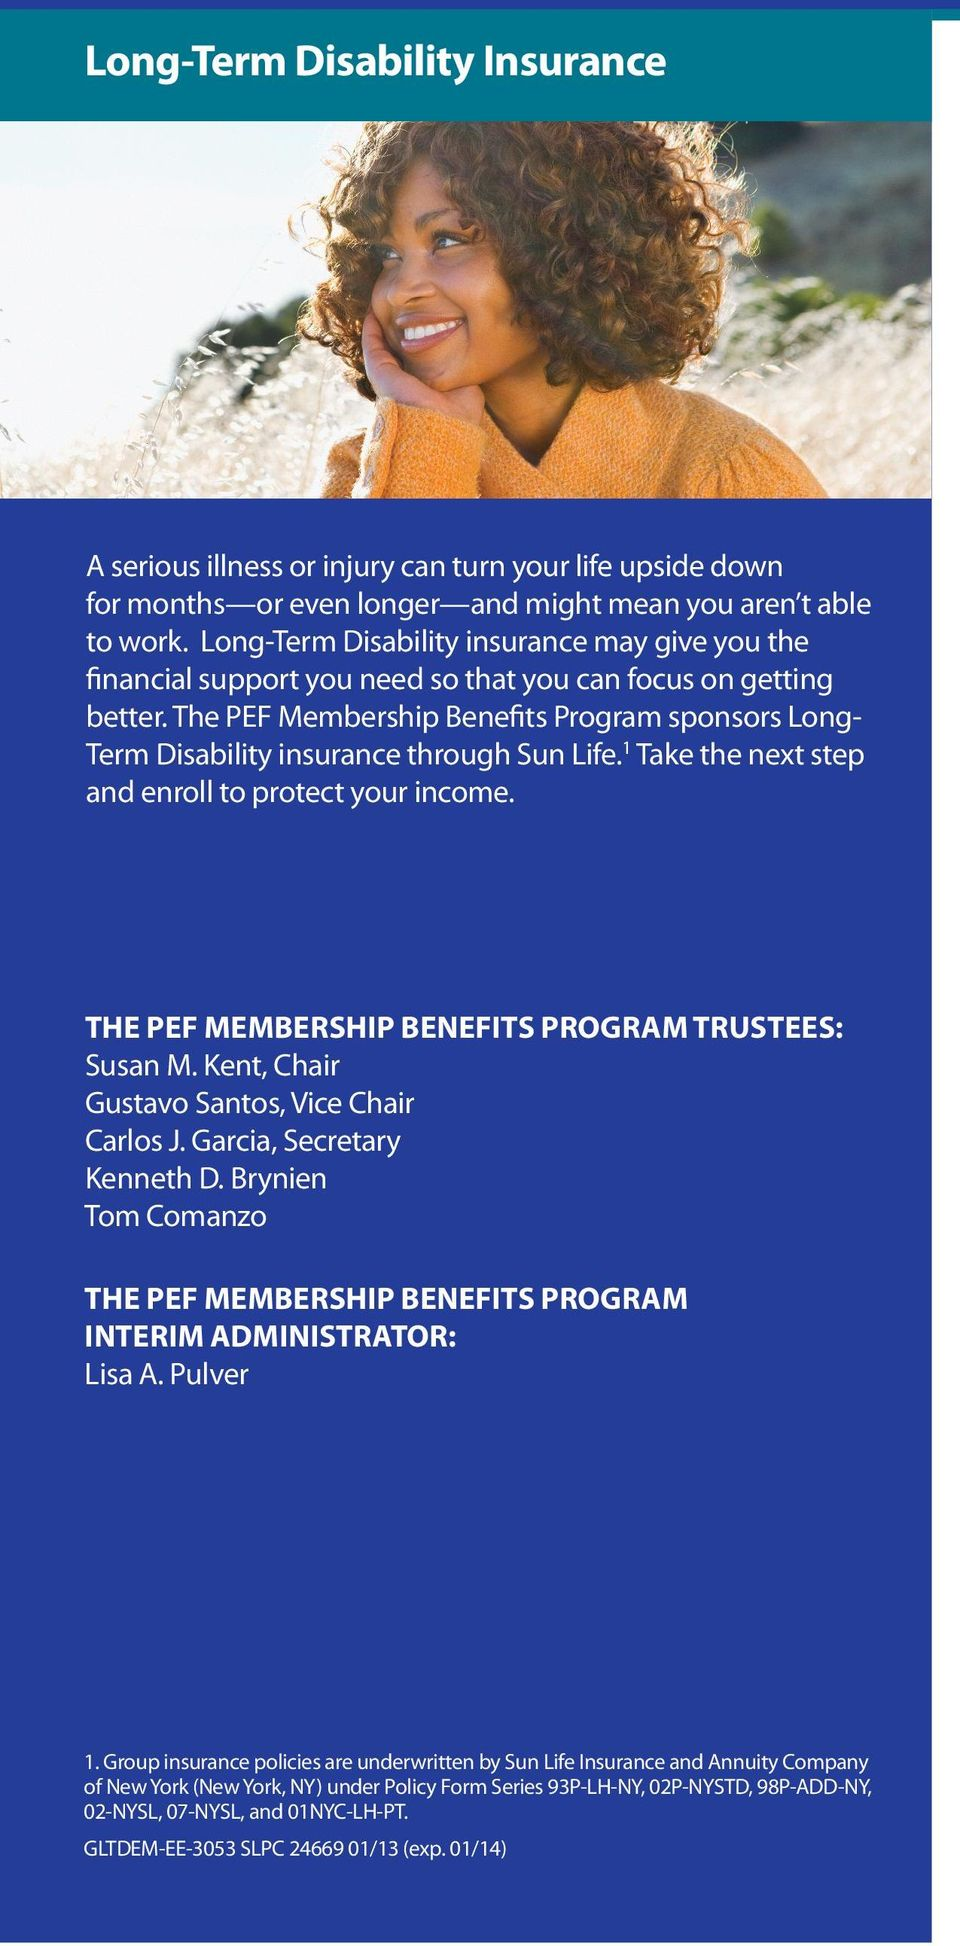 the PeF membership benefits Program sponsors longterm disability insurance through sun life. 1 take the next step and enroll to protect your income.